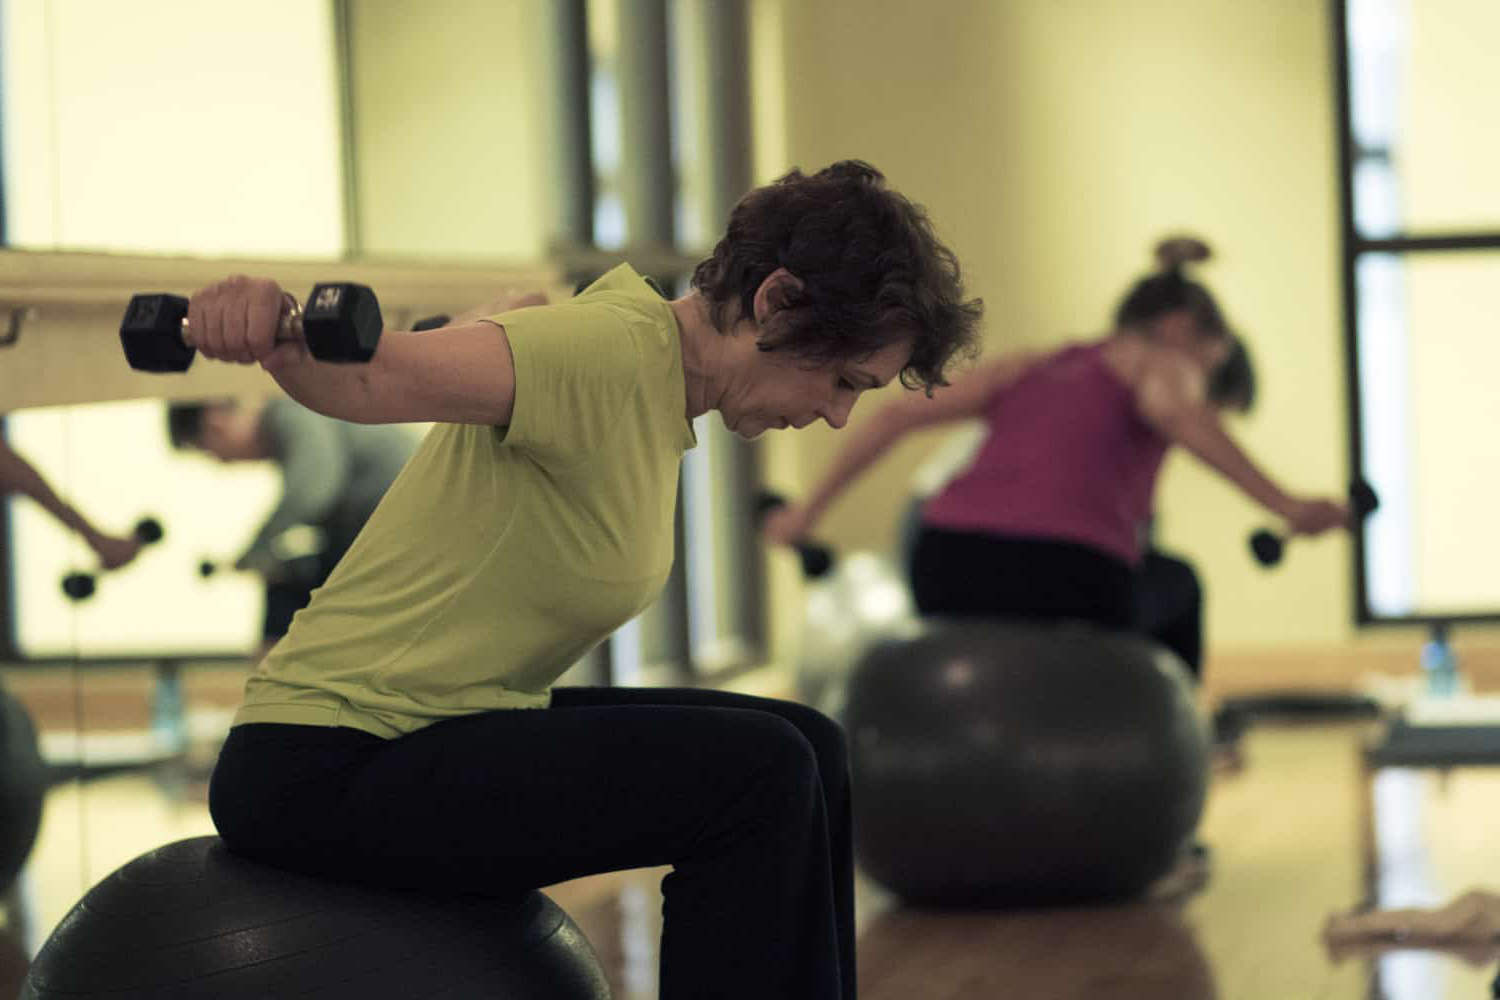 Woman concentrating on lifting weights during Body360.